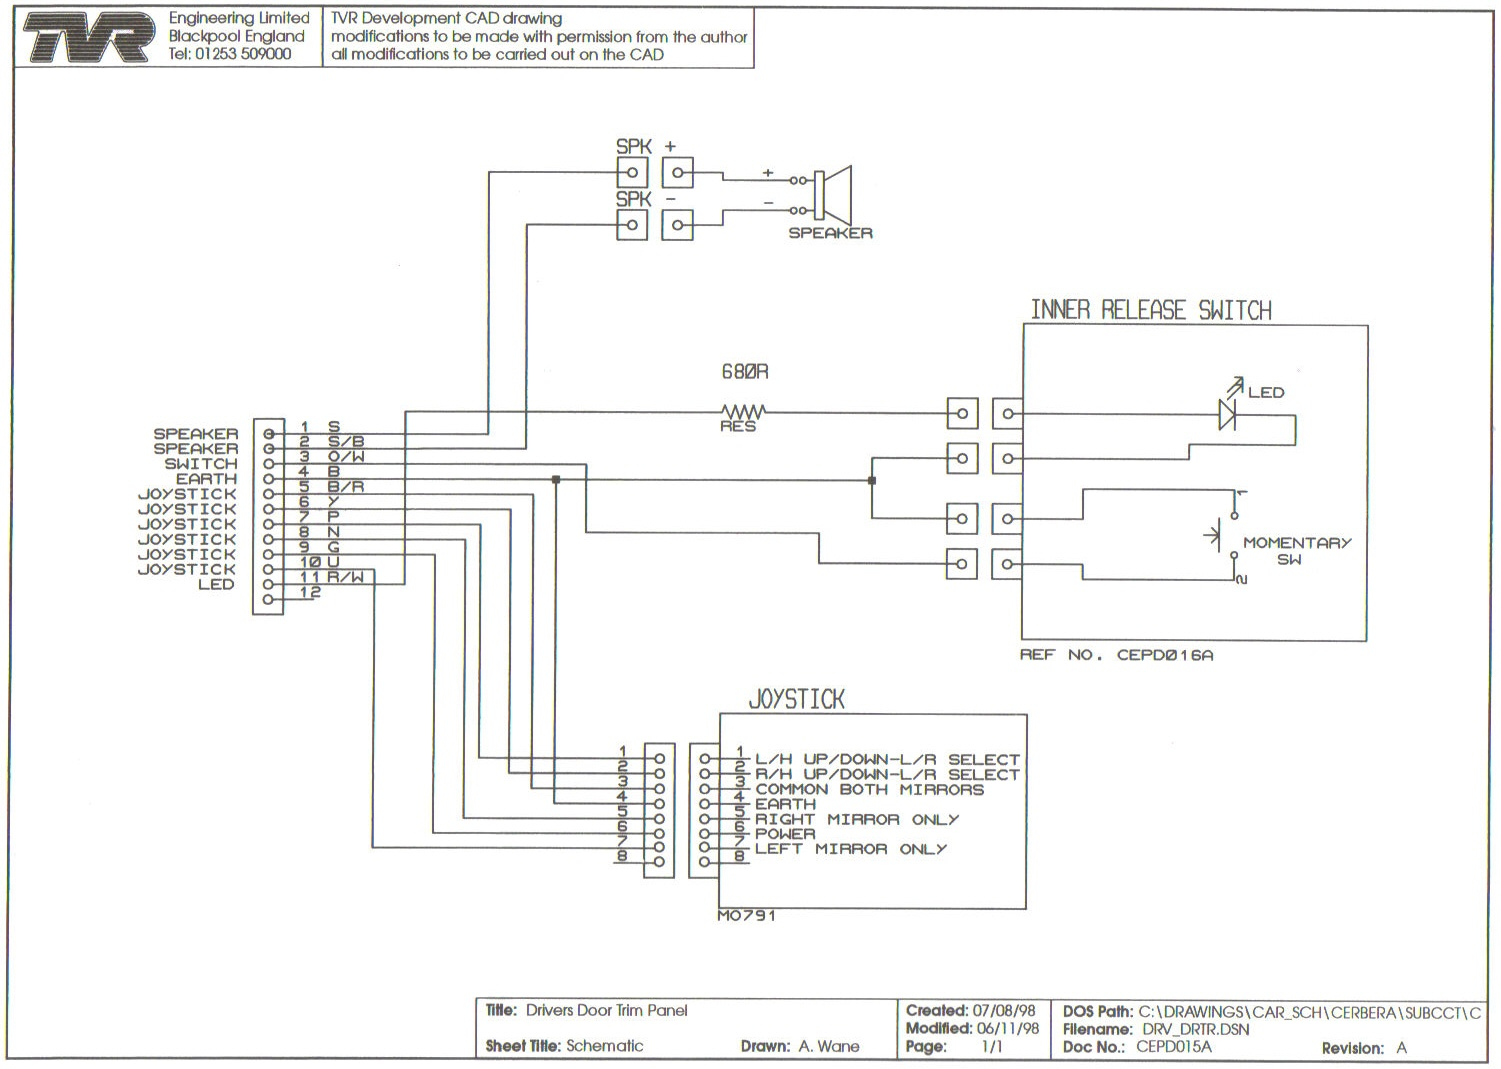 sanwa joystick wiring diagram sanwa get free image about wiring diagram. Black Bedroom Furniture Sets. Home Design Ideas